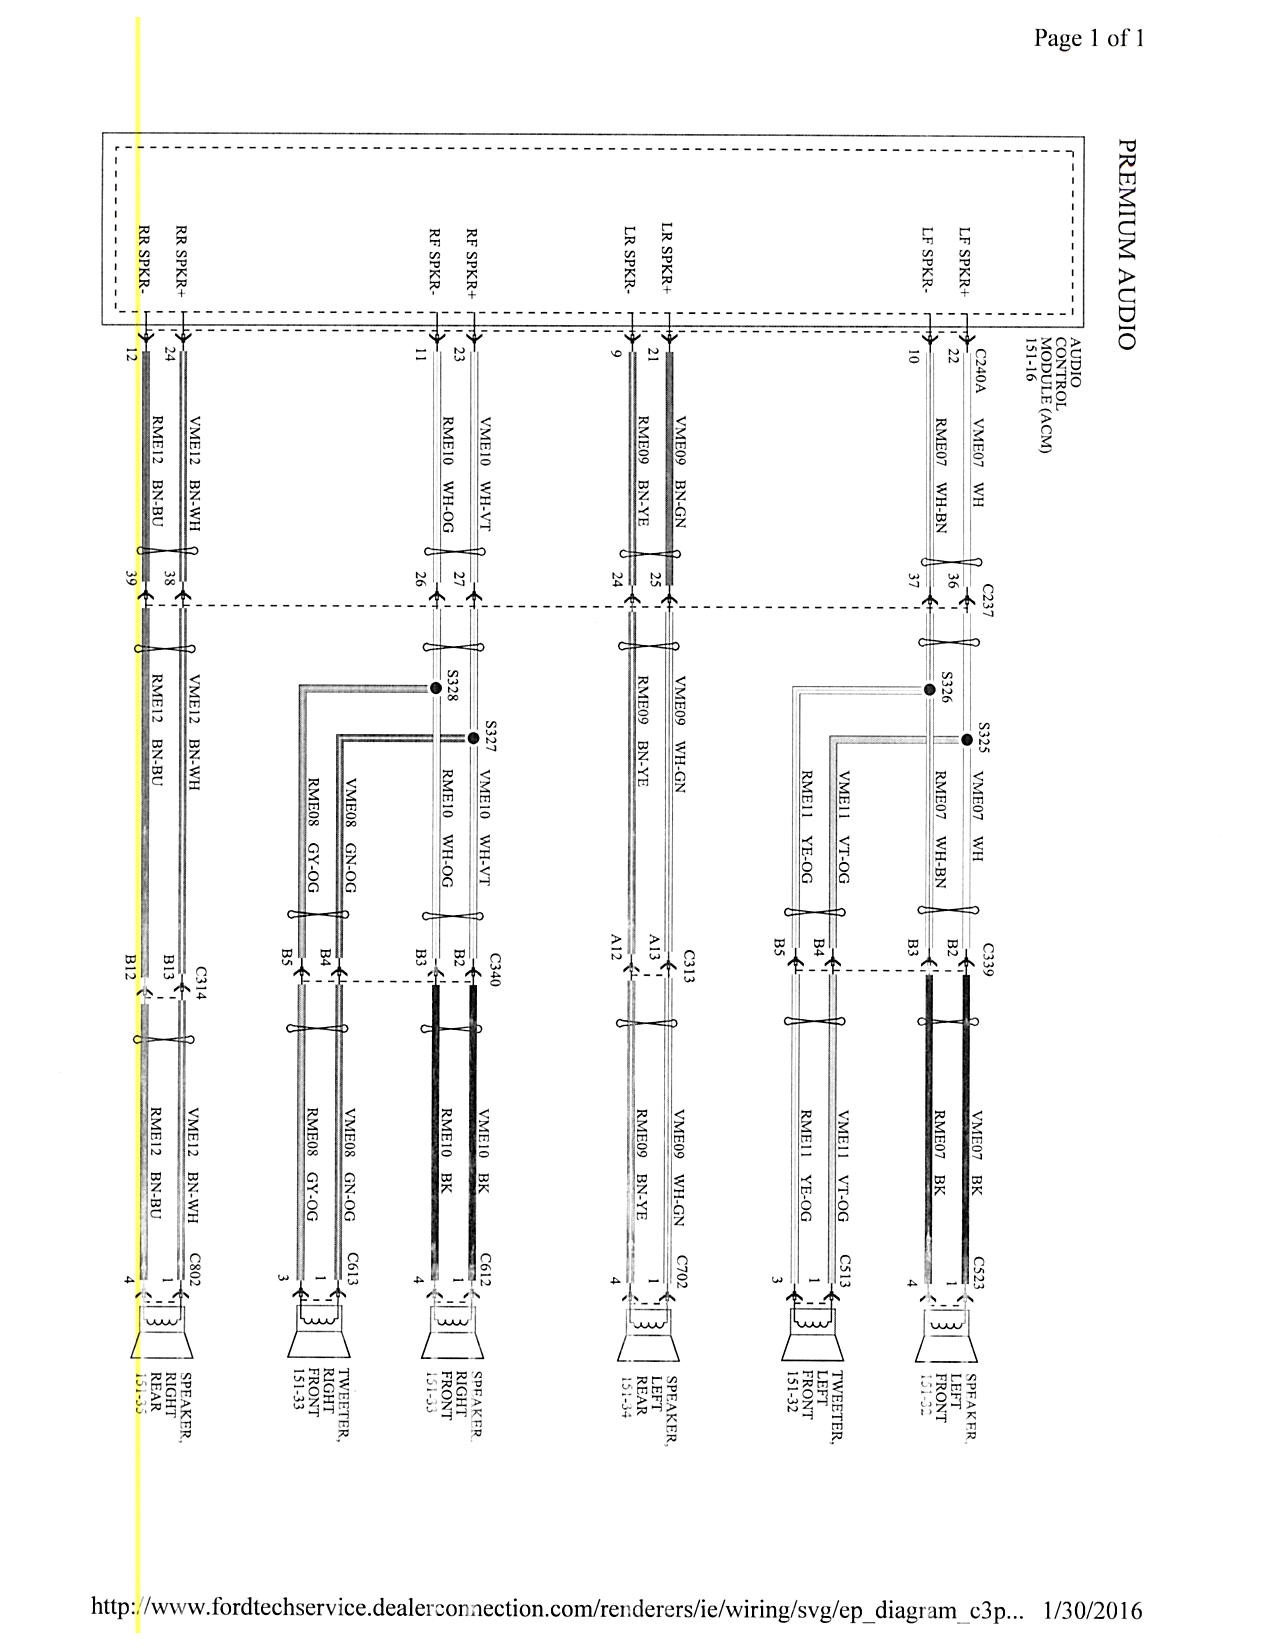 Wiring Diagram For A Ford Focus Pictures